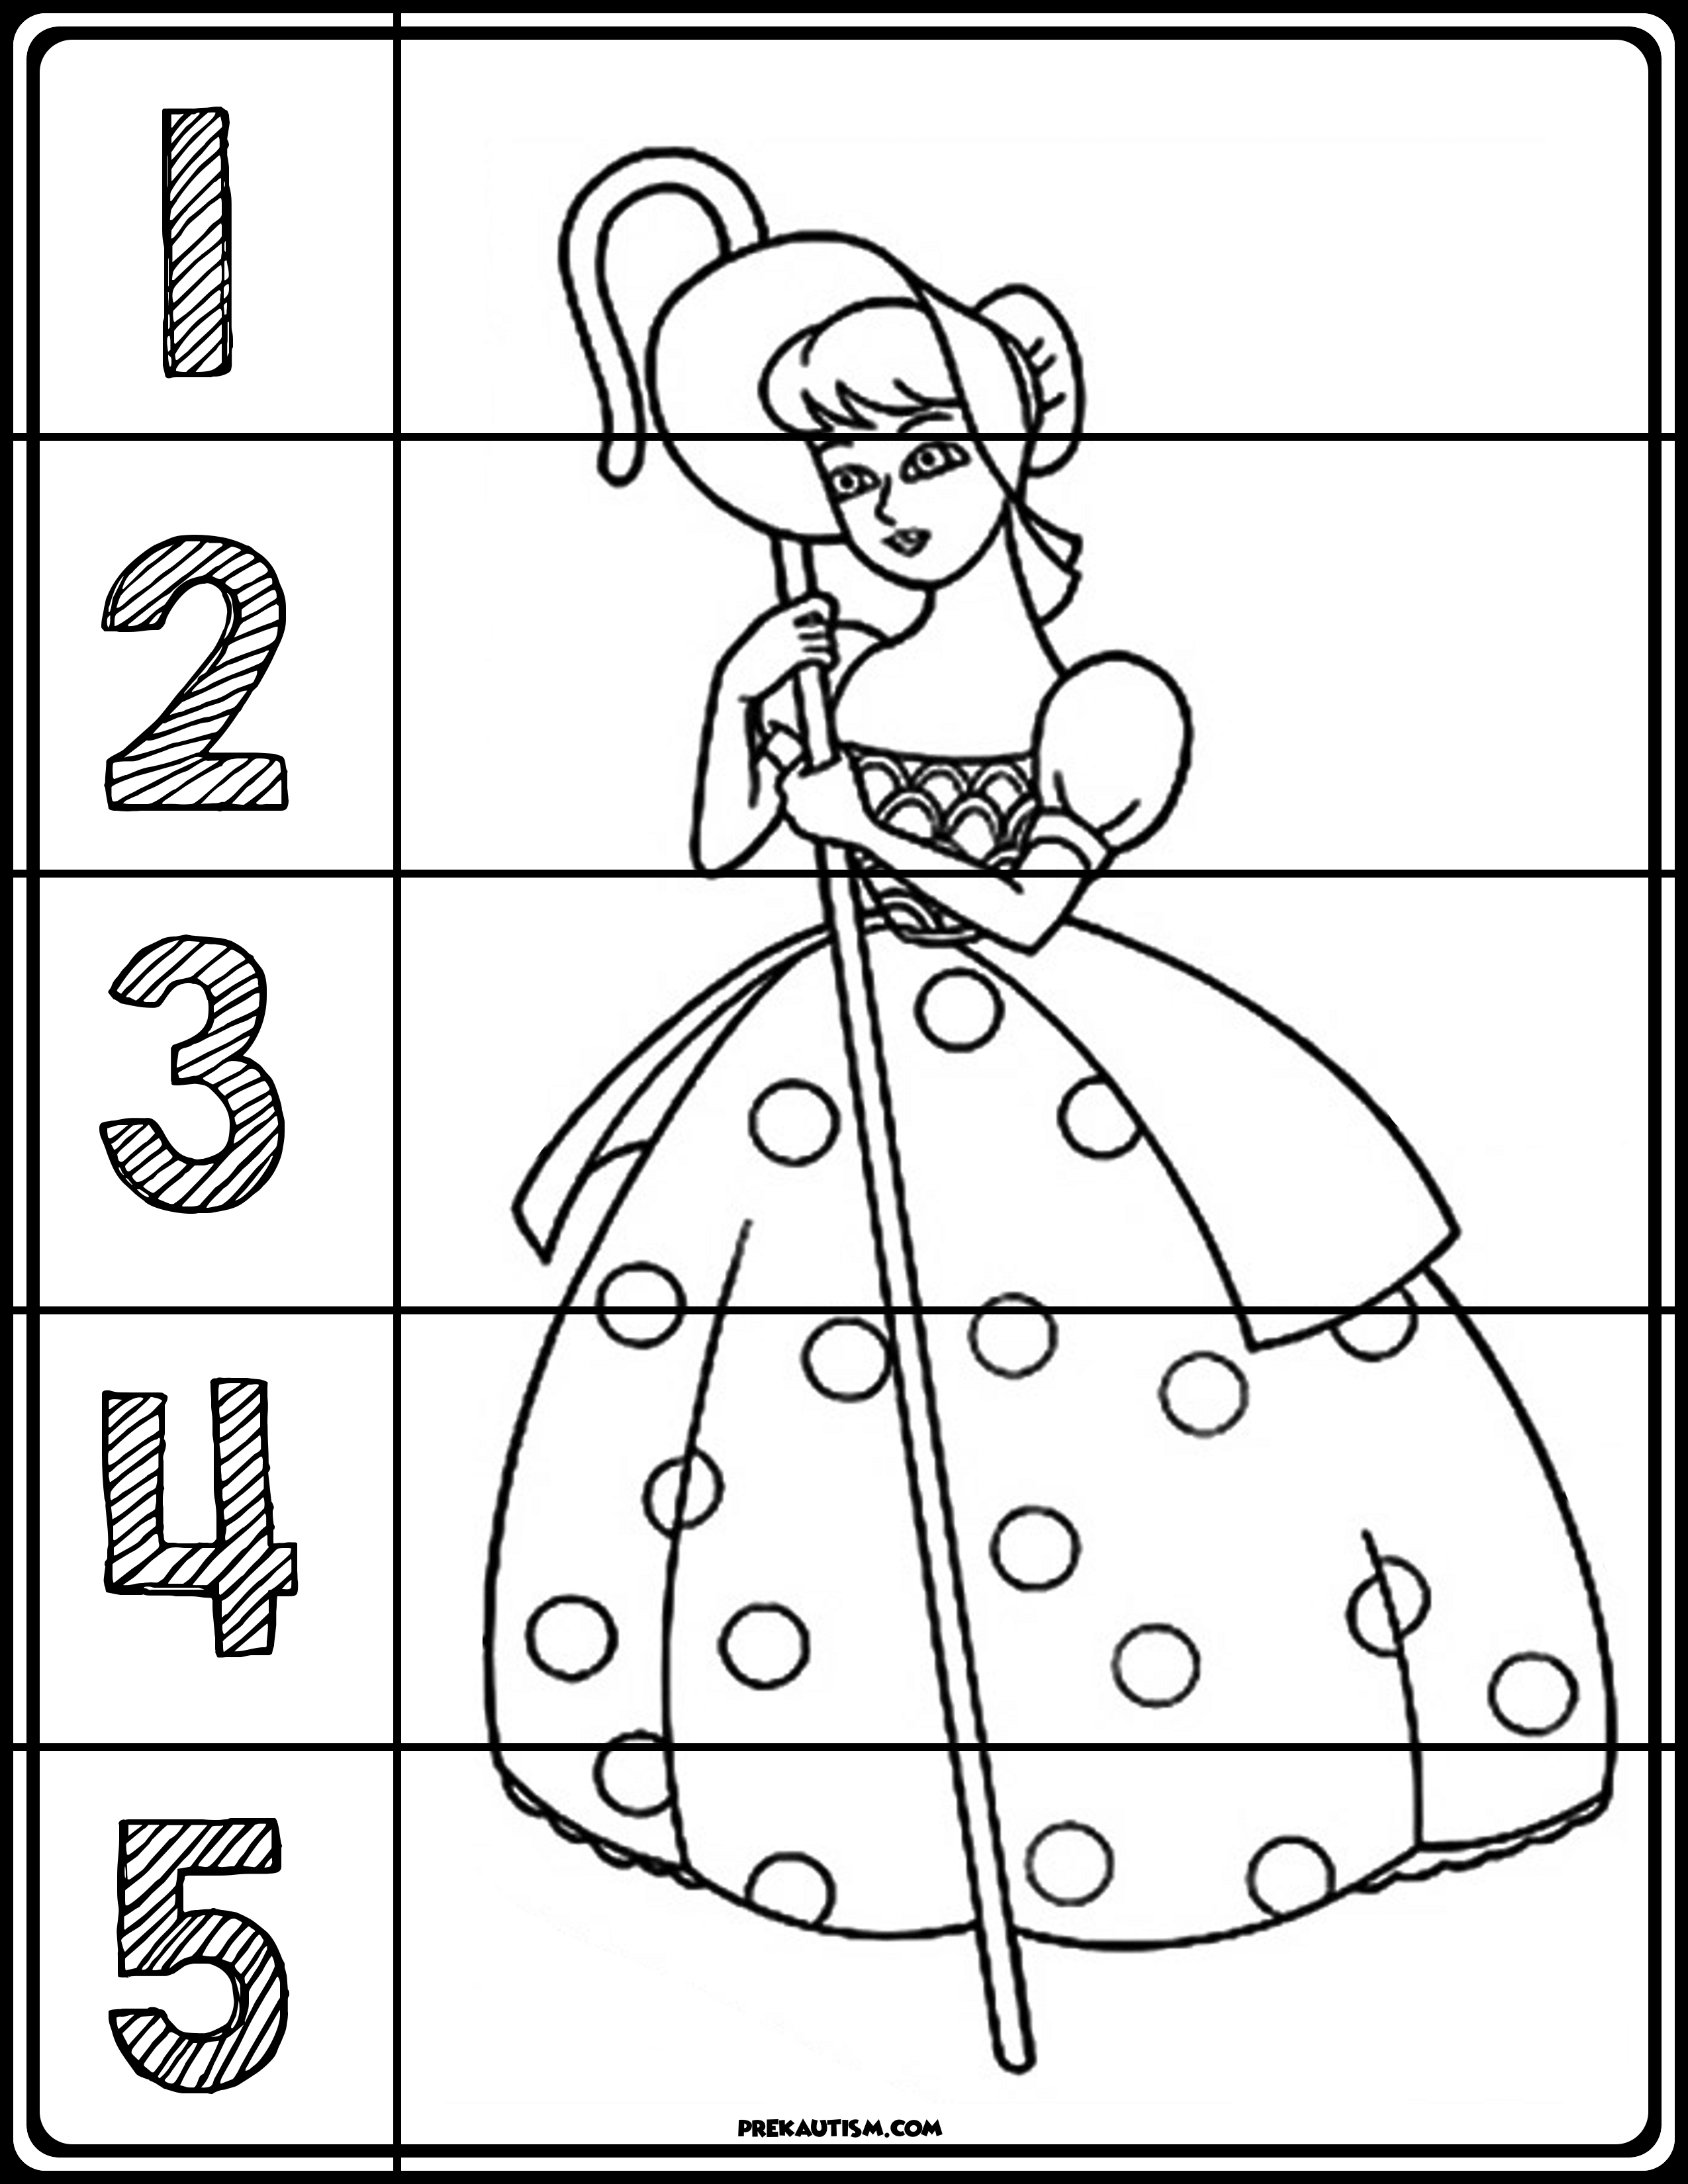 coloring toy worksheet toys coloring pages coloring toy worksheet